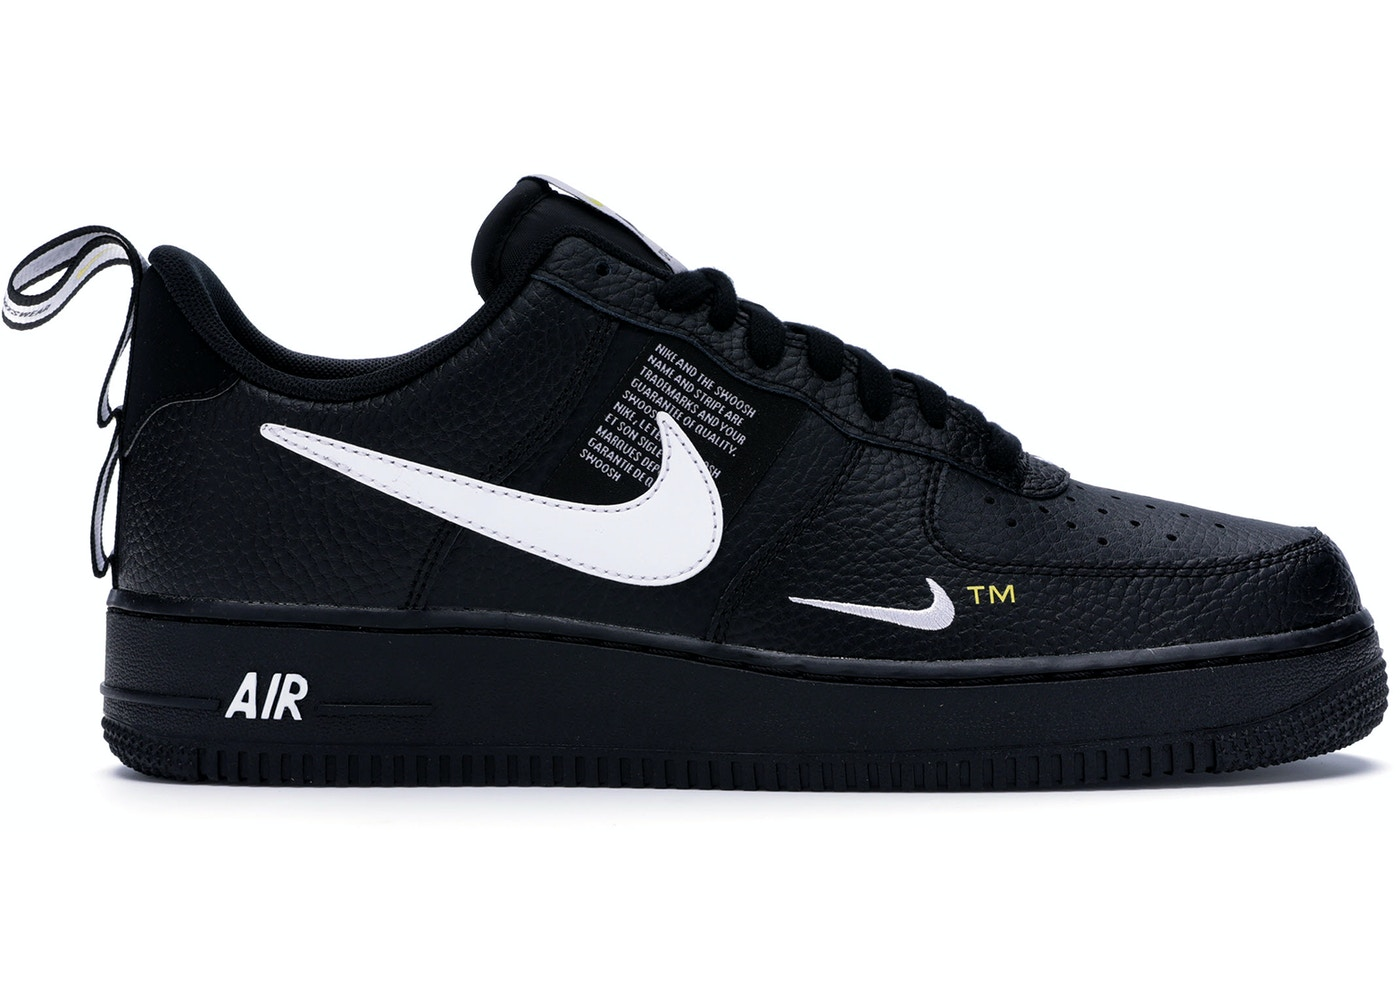 timeless design aea76 2a571 Buy Nike Air Force 1 Shoes   Deadstock Sneakers